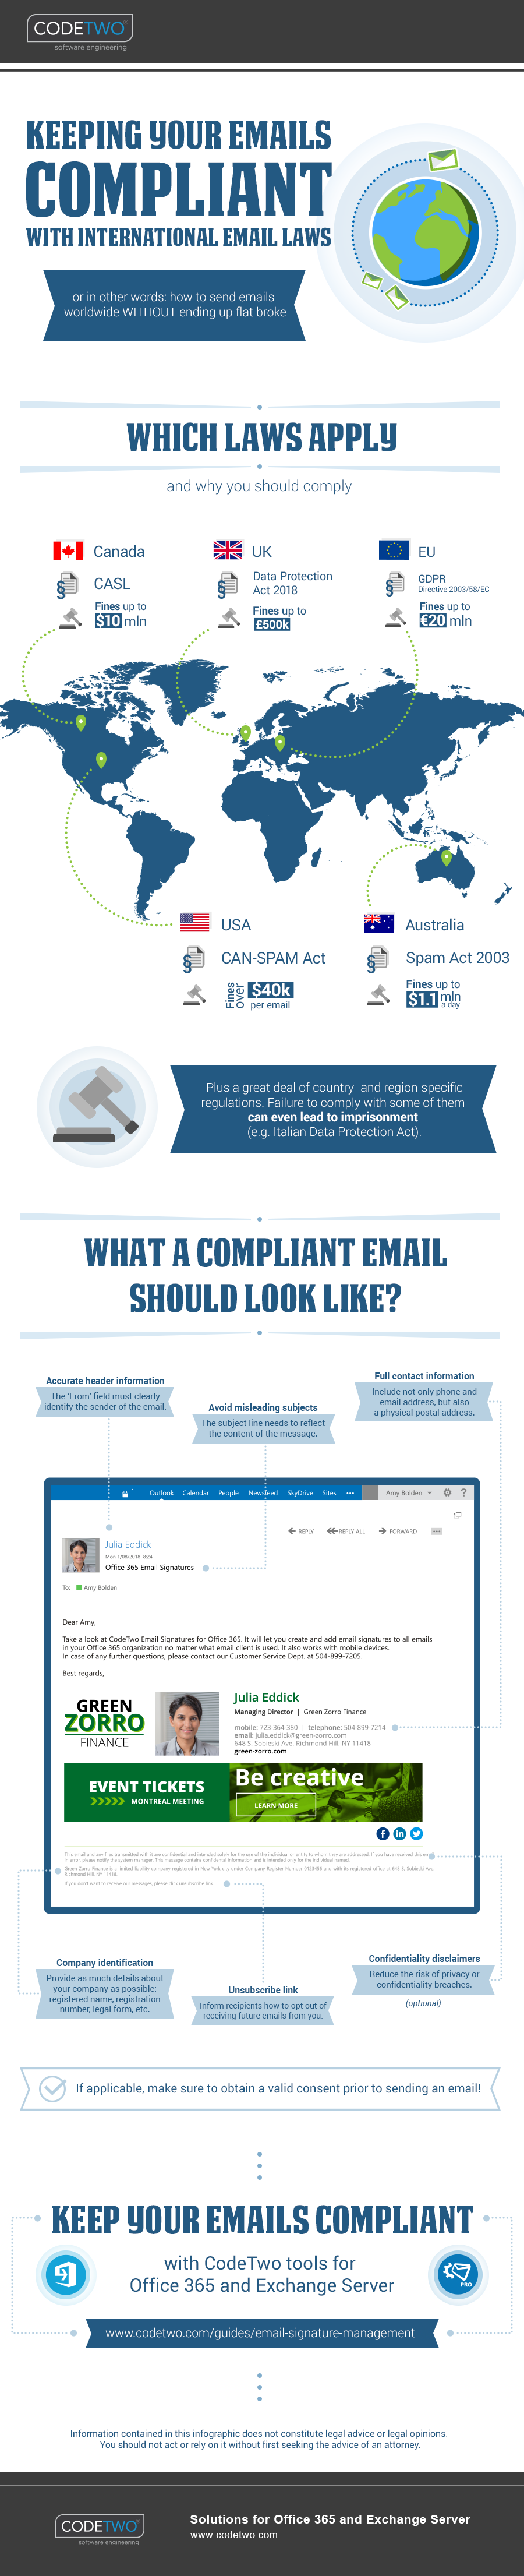 Keeping your emails legally compliant | Infographic